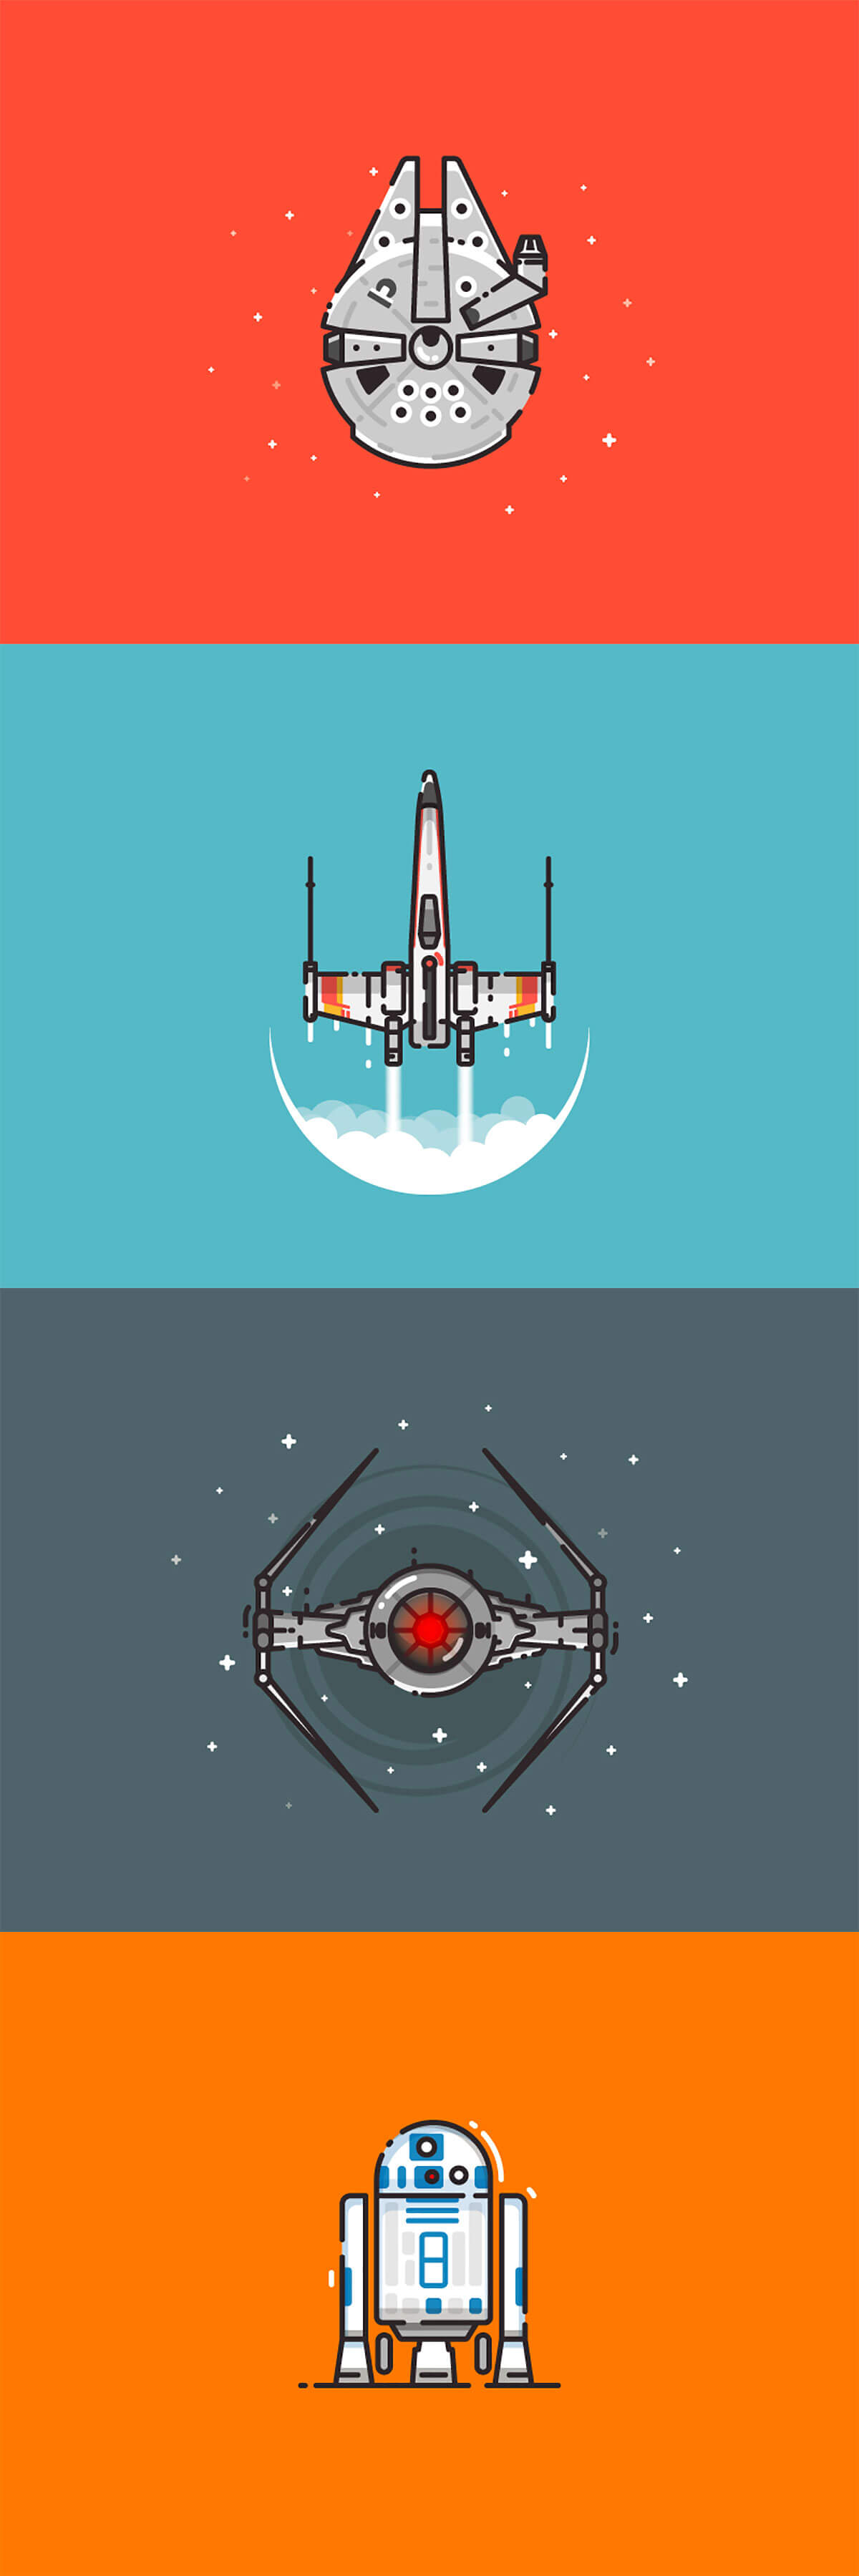 Star Wars spaceship illustrations by Infographic Paradise